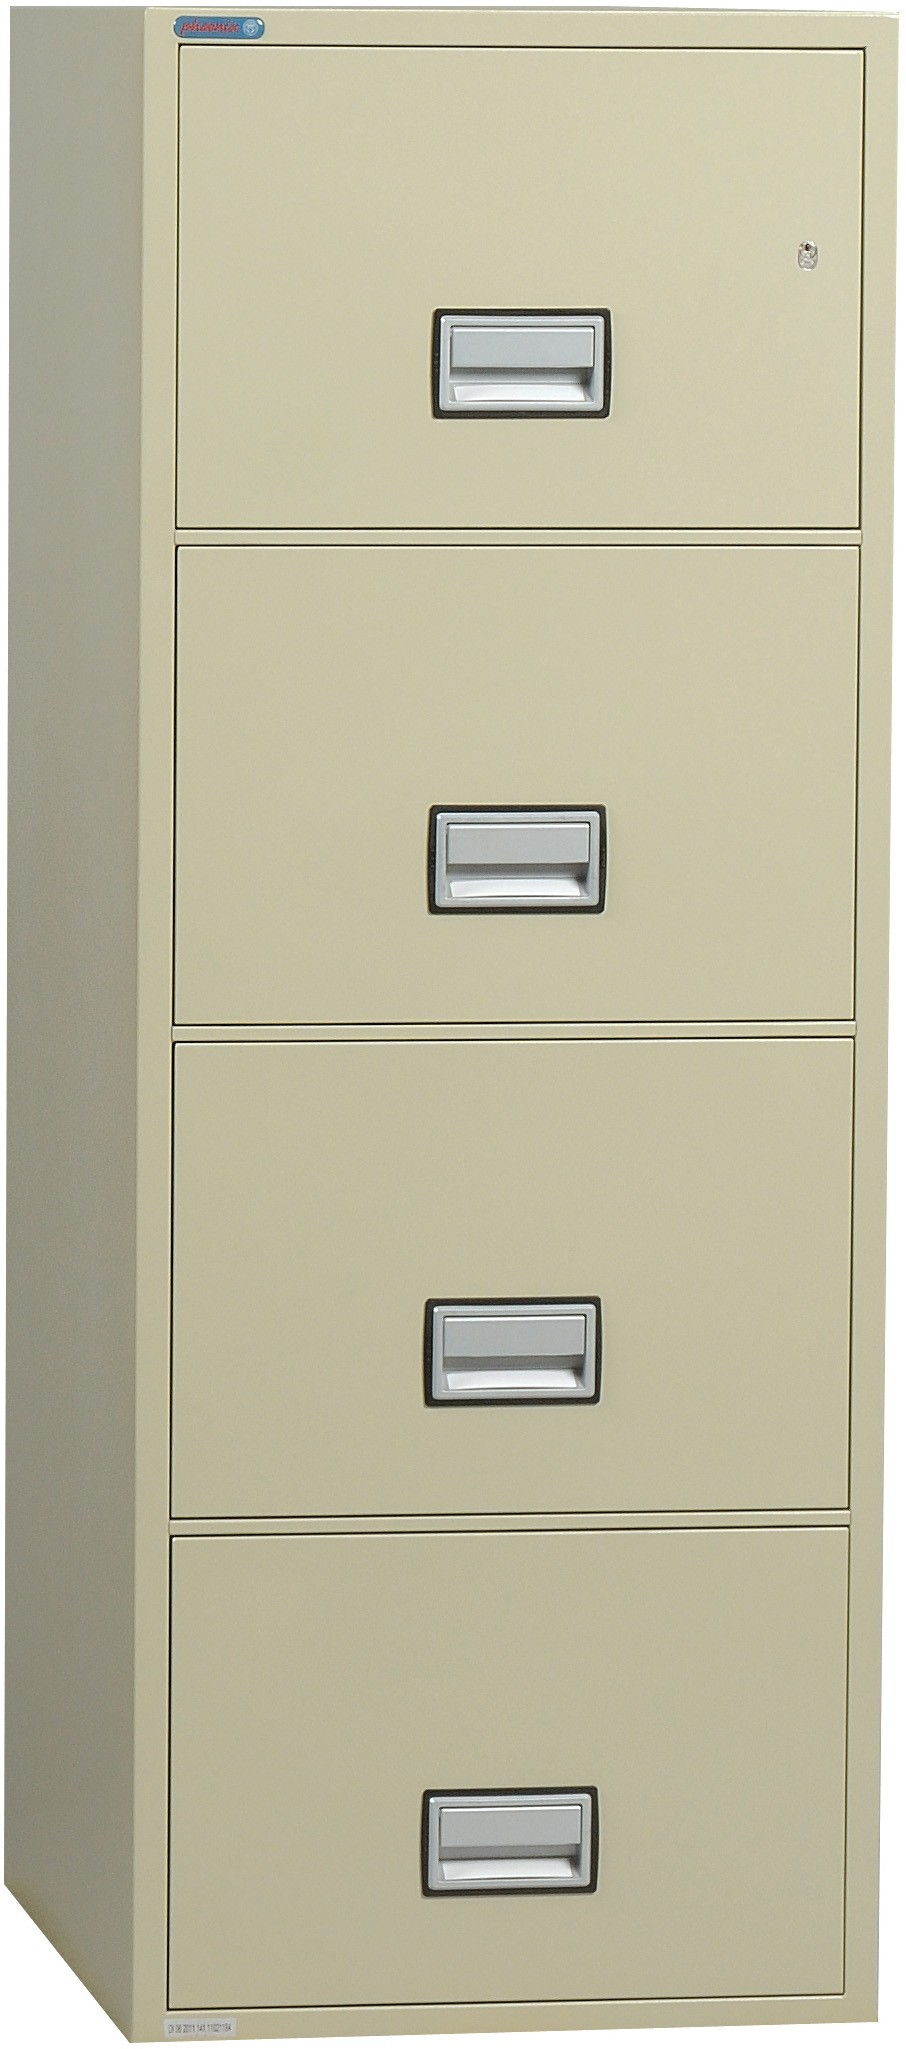 Phoenix Vertical 25 inch 4-Drawer Legal Fireproof File Cabinet